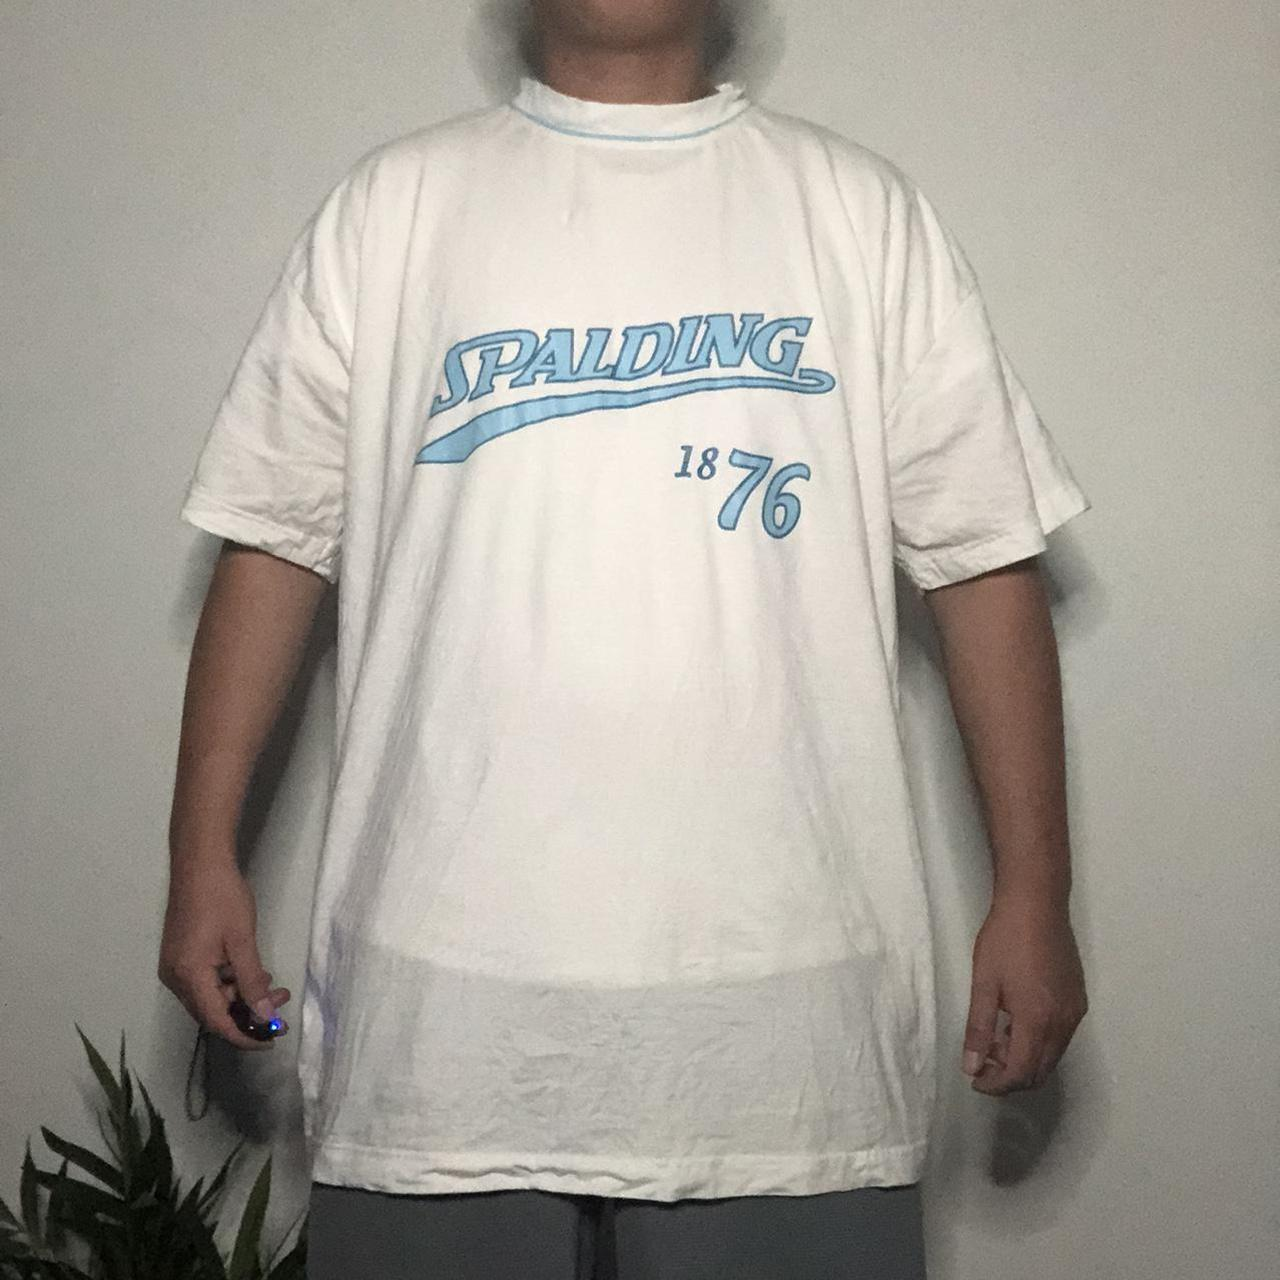 Product Image 1 - Vintage Spalding T-shirt 🏀🔥 Condition: 8.5/10